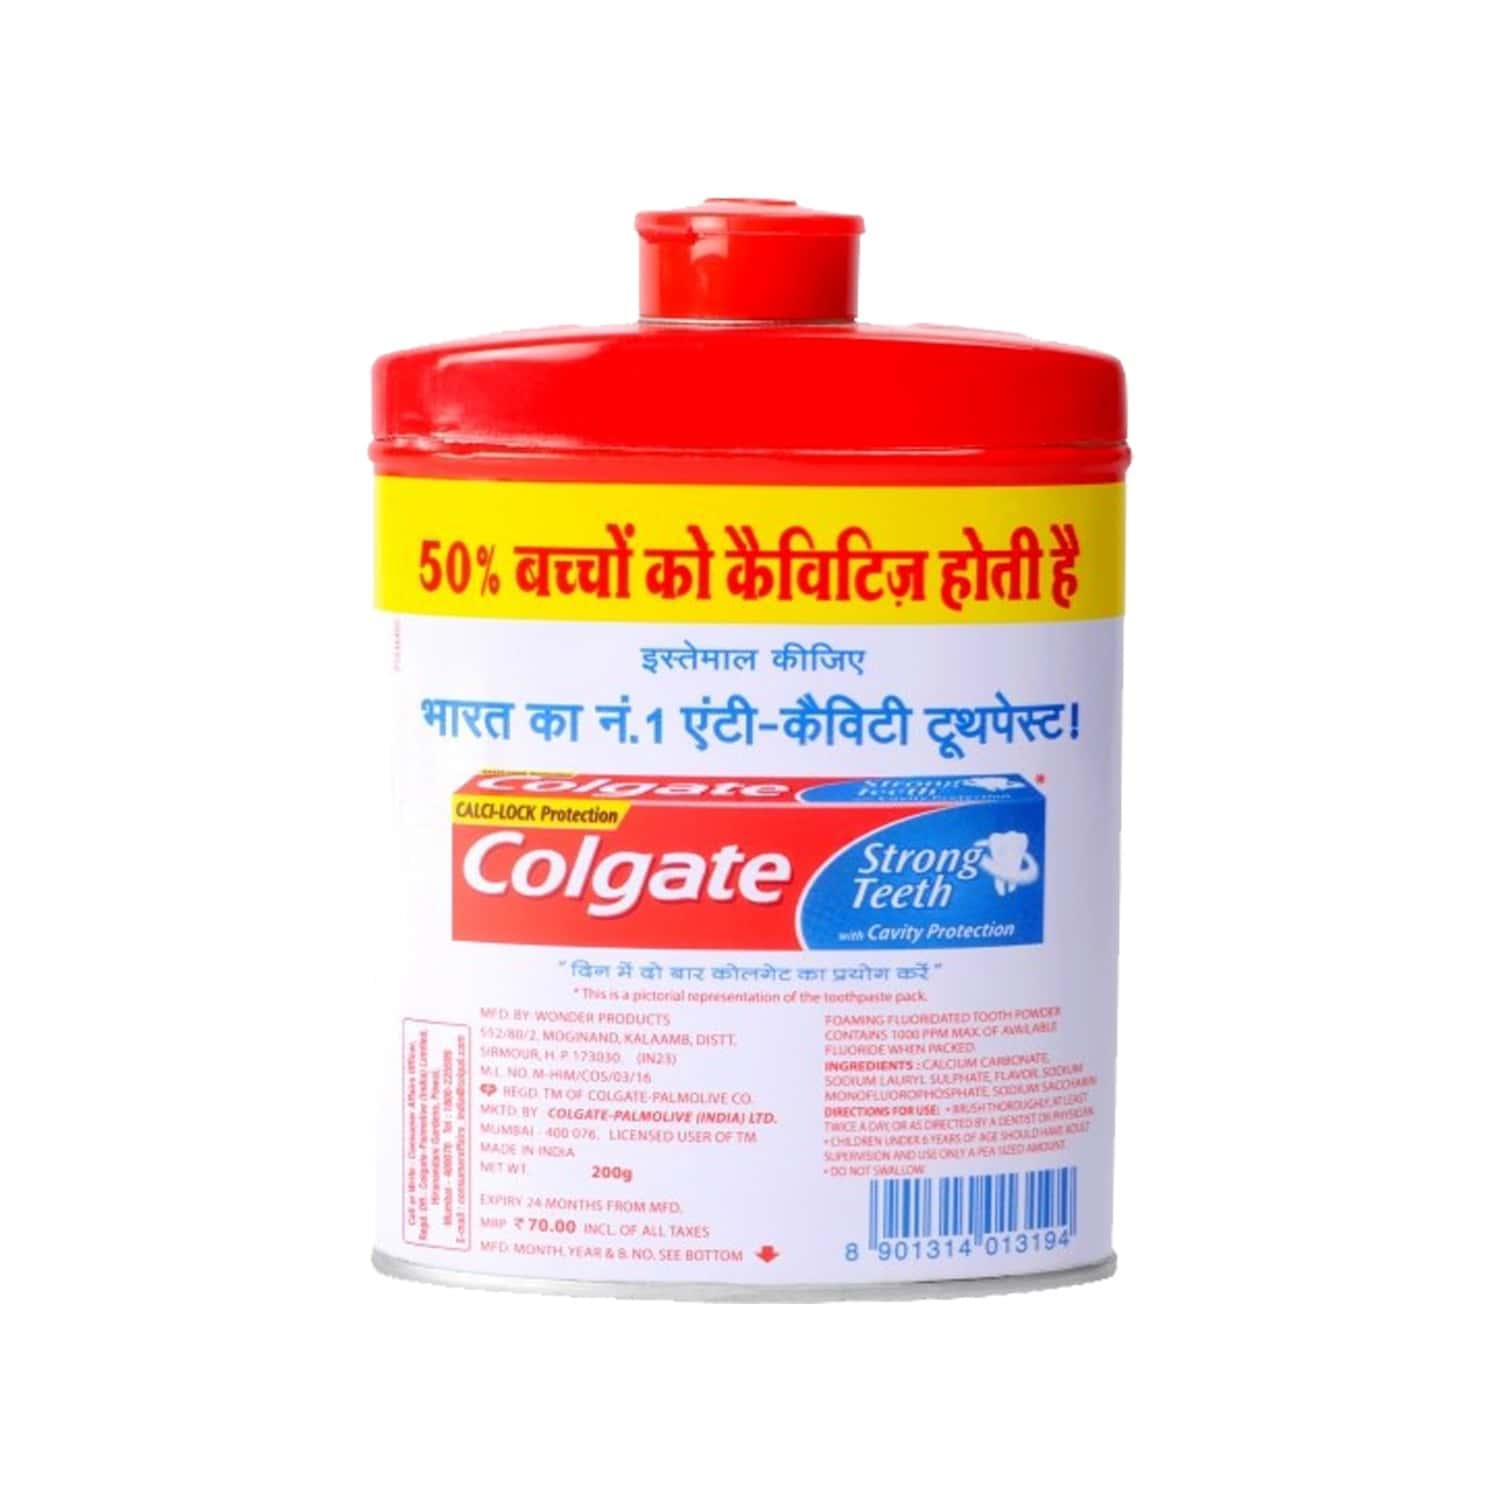 Colgate Toothpowder -with Calcium And Minerals - 200 G - Anti-cavity